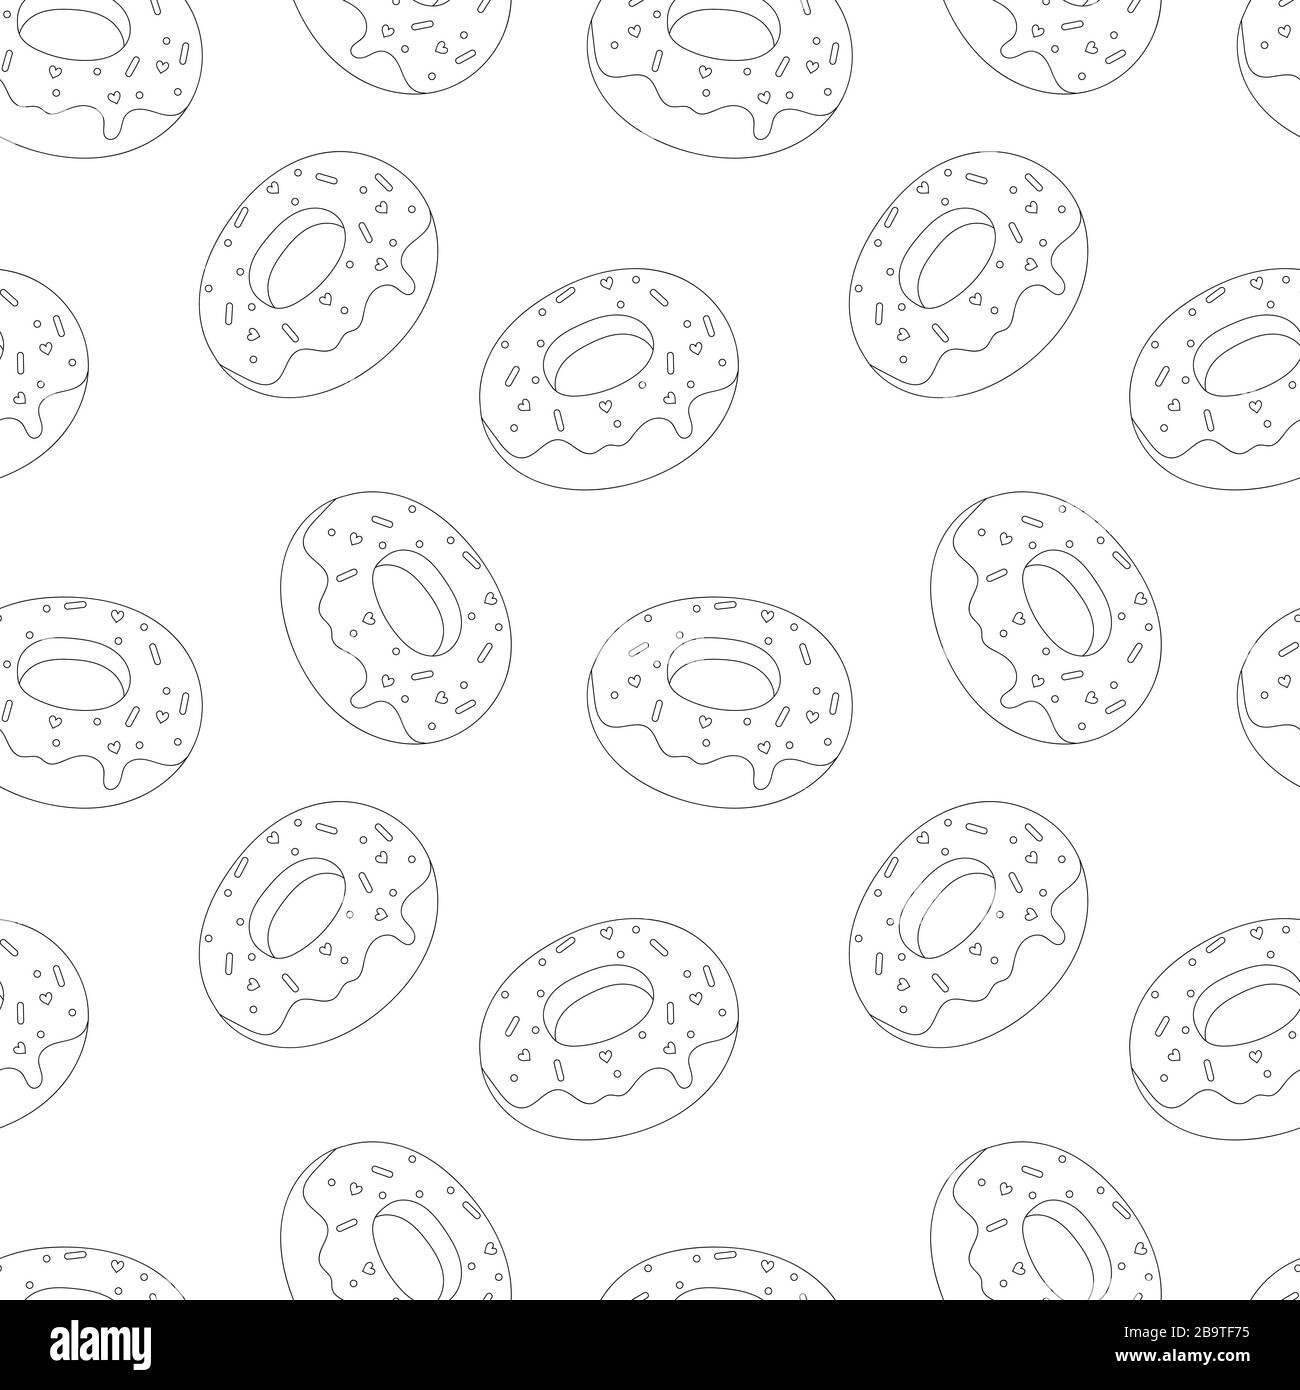 Donuts Black And White Stock Photos Images Alamy